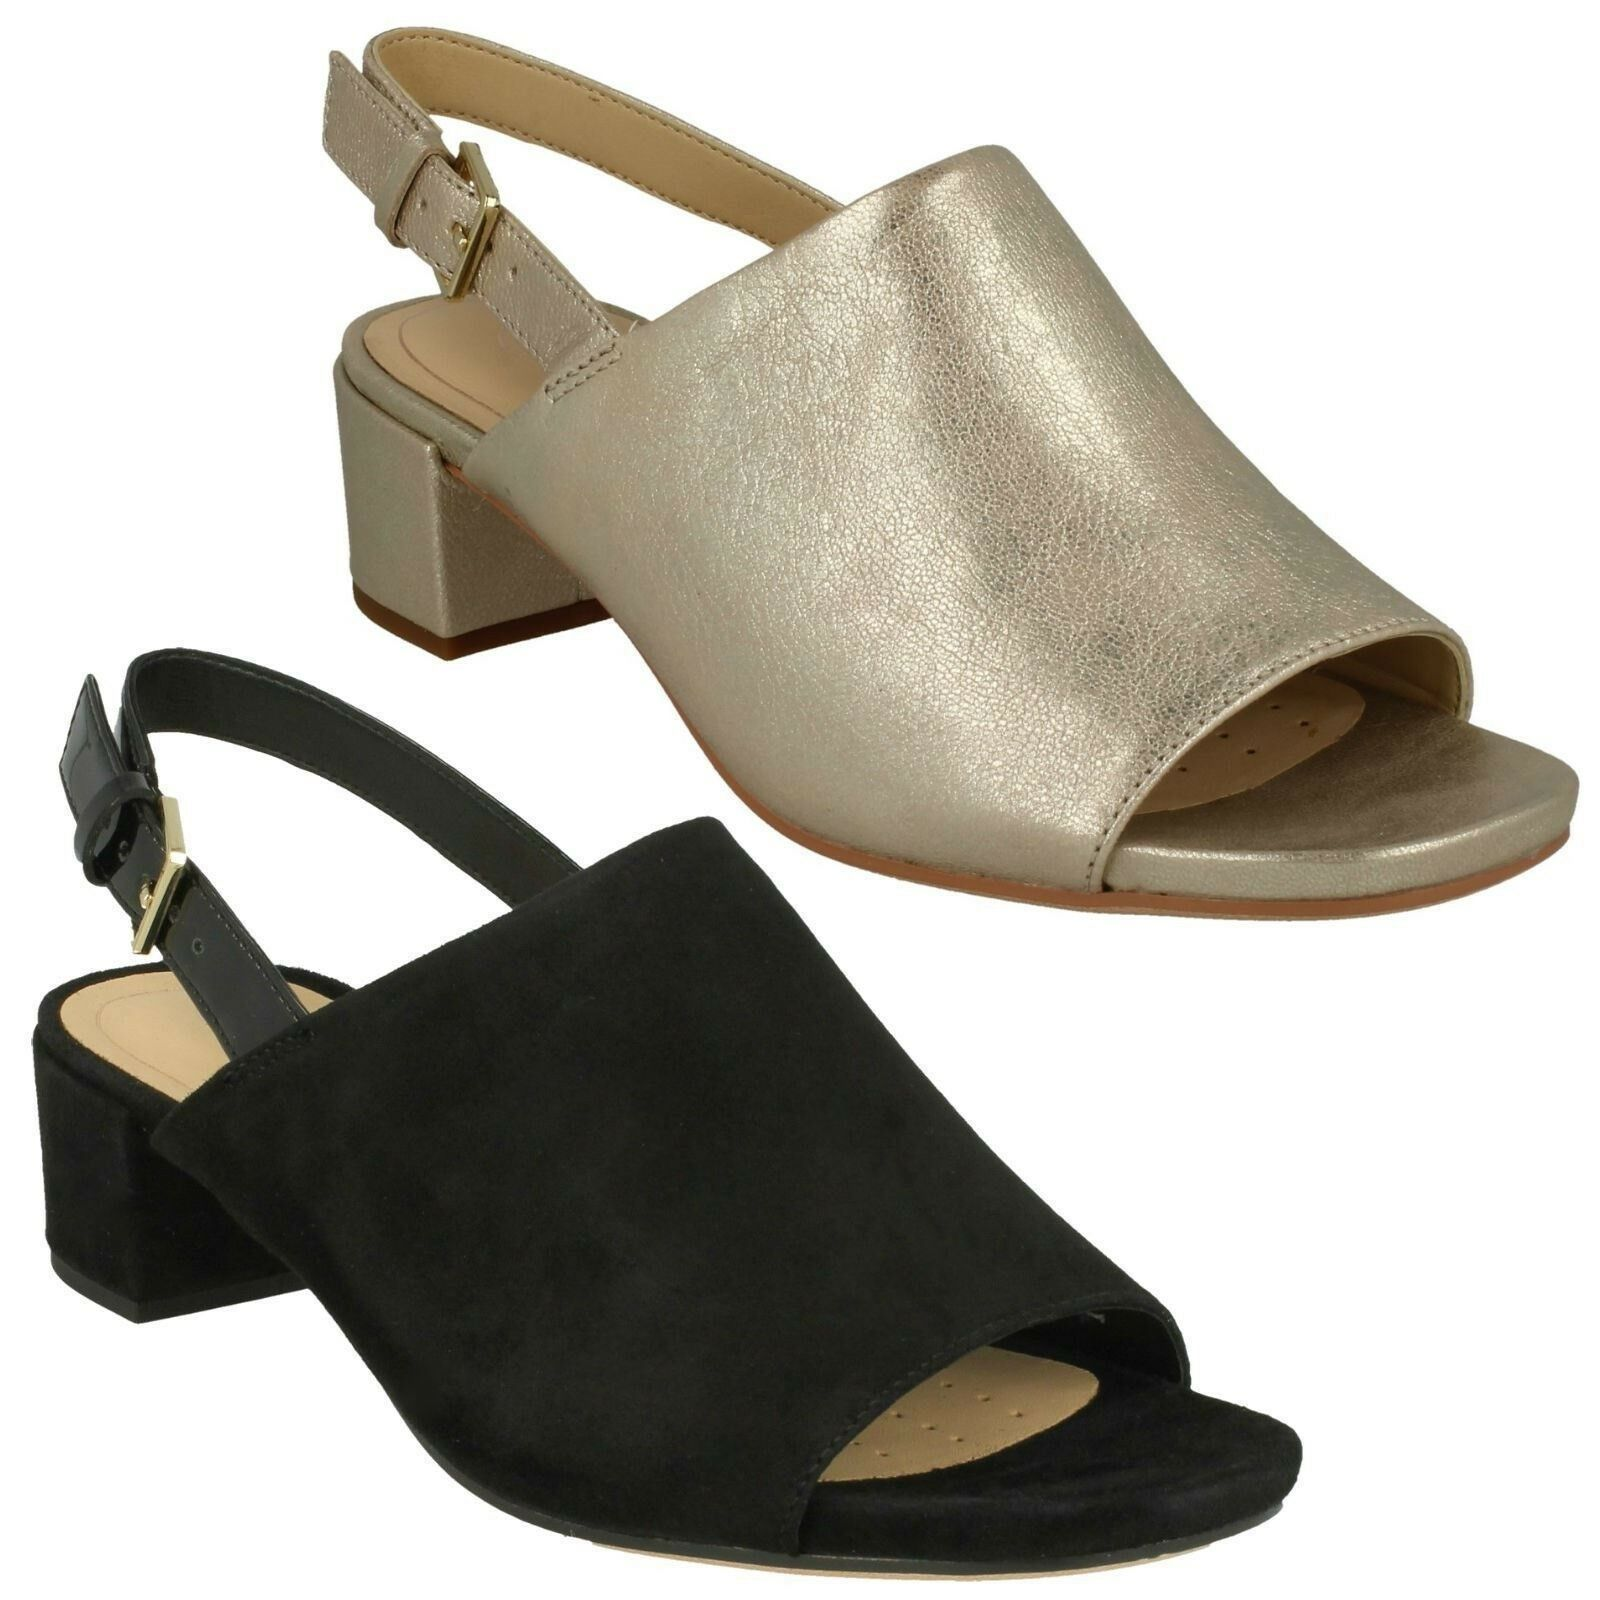 LADIES CLARKS SANDALS LEATHER SUEDE PEEP TOE SLINGBACK SUMMER SANDALS CLARKS Schuhe ORABELLA IVY 11b20c